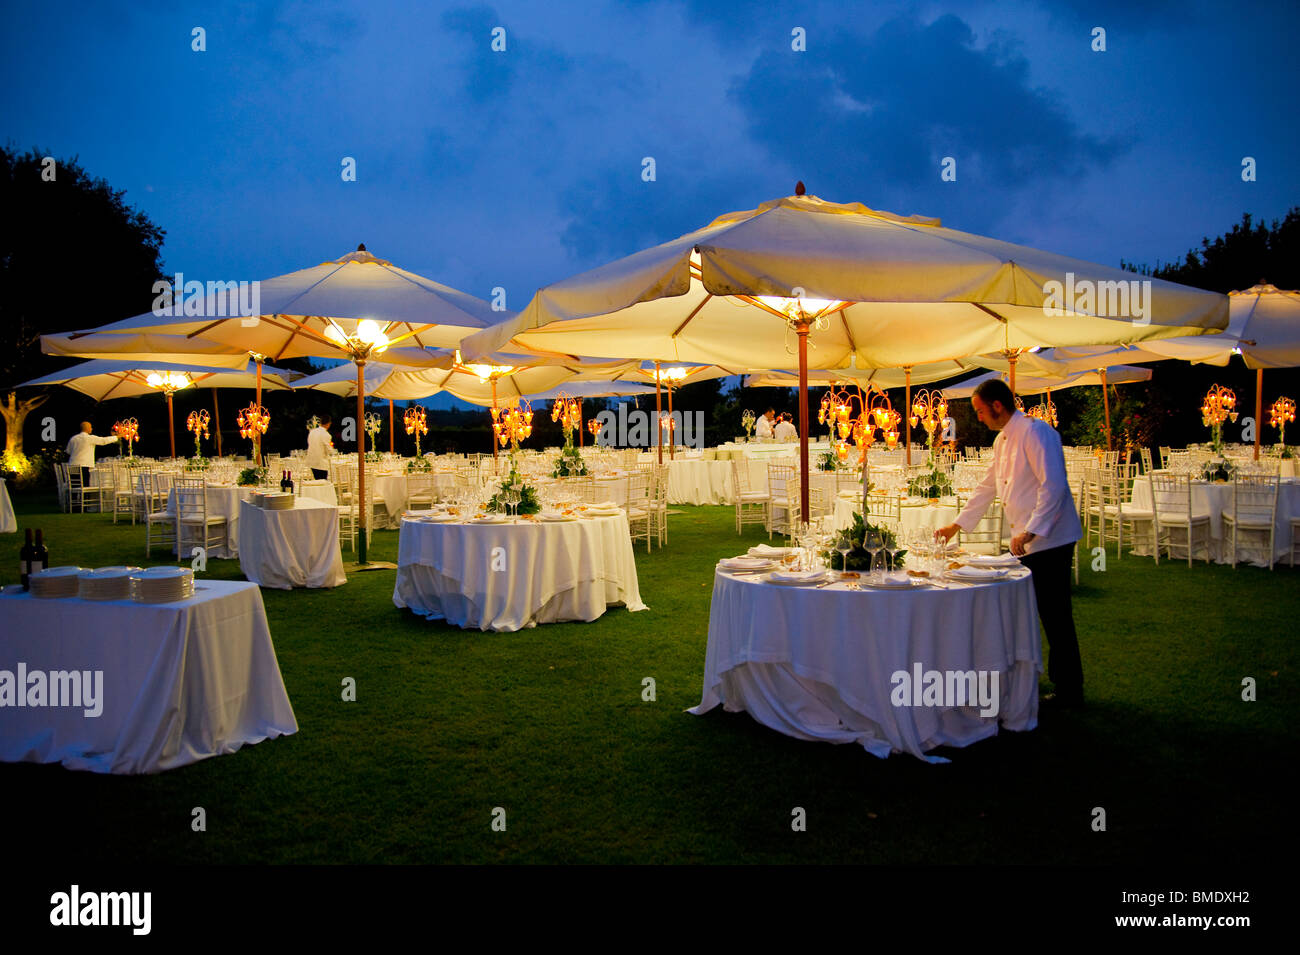 Outdoor Wedding Dinner Table Arrangement At Night Stock